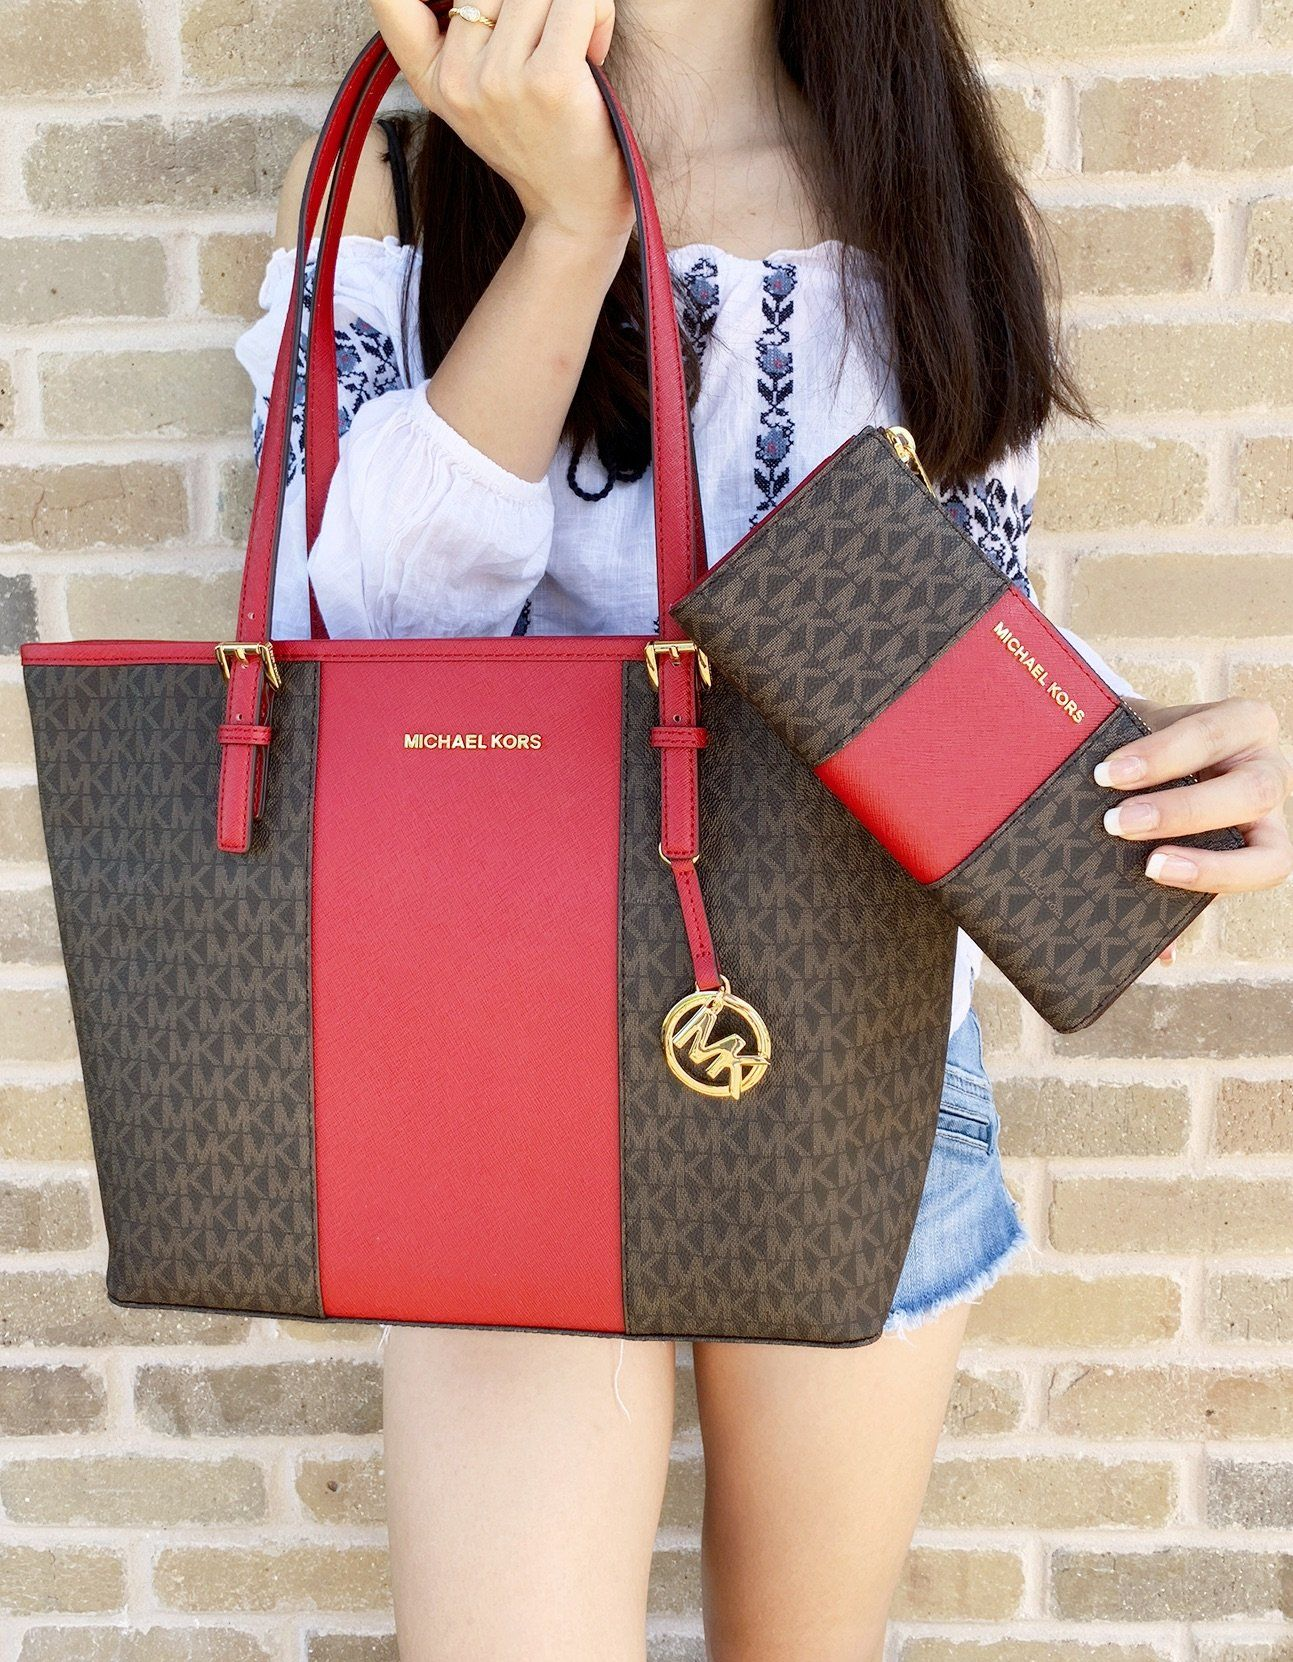 90c75707c7a7 Michael Kors Medium Carryall Tote Brown MK Signature Red Wallet SET #MK  #poshpackages #amazondeals #tradesycloset #ebay #ebayfashion #poshboss  #poshcloset ...